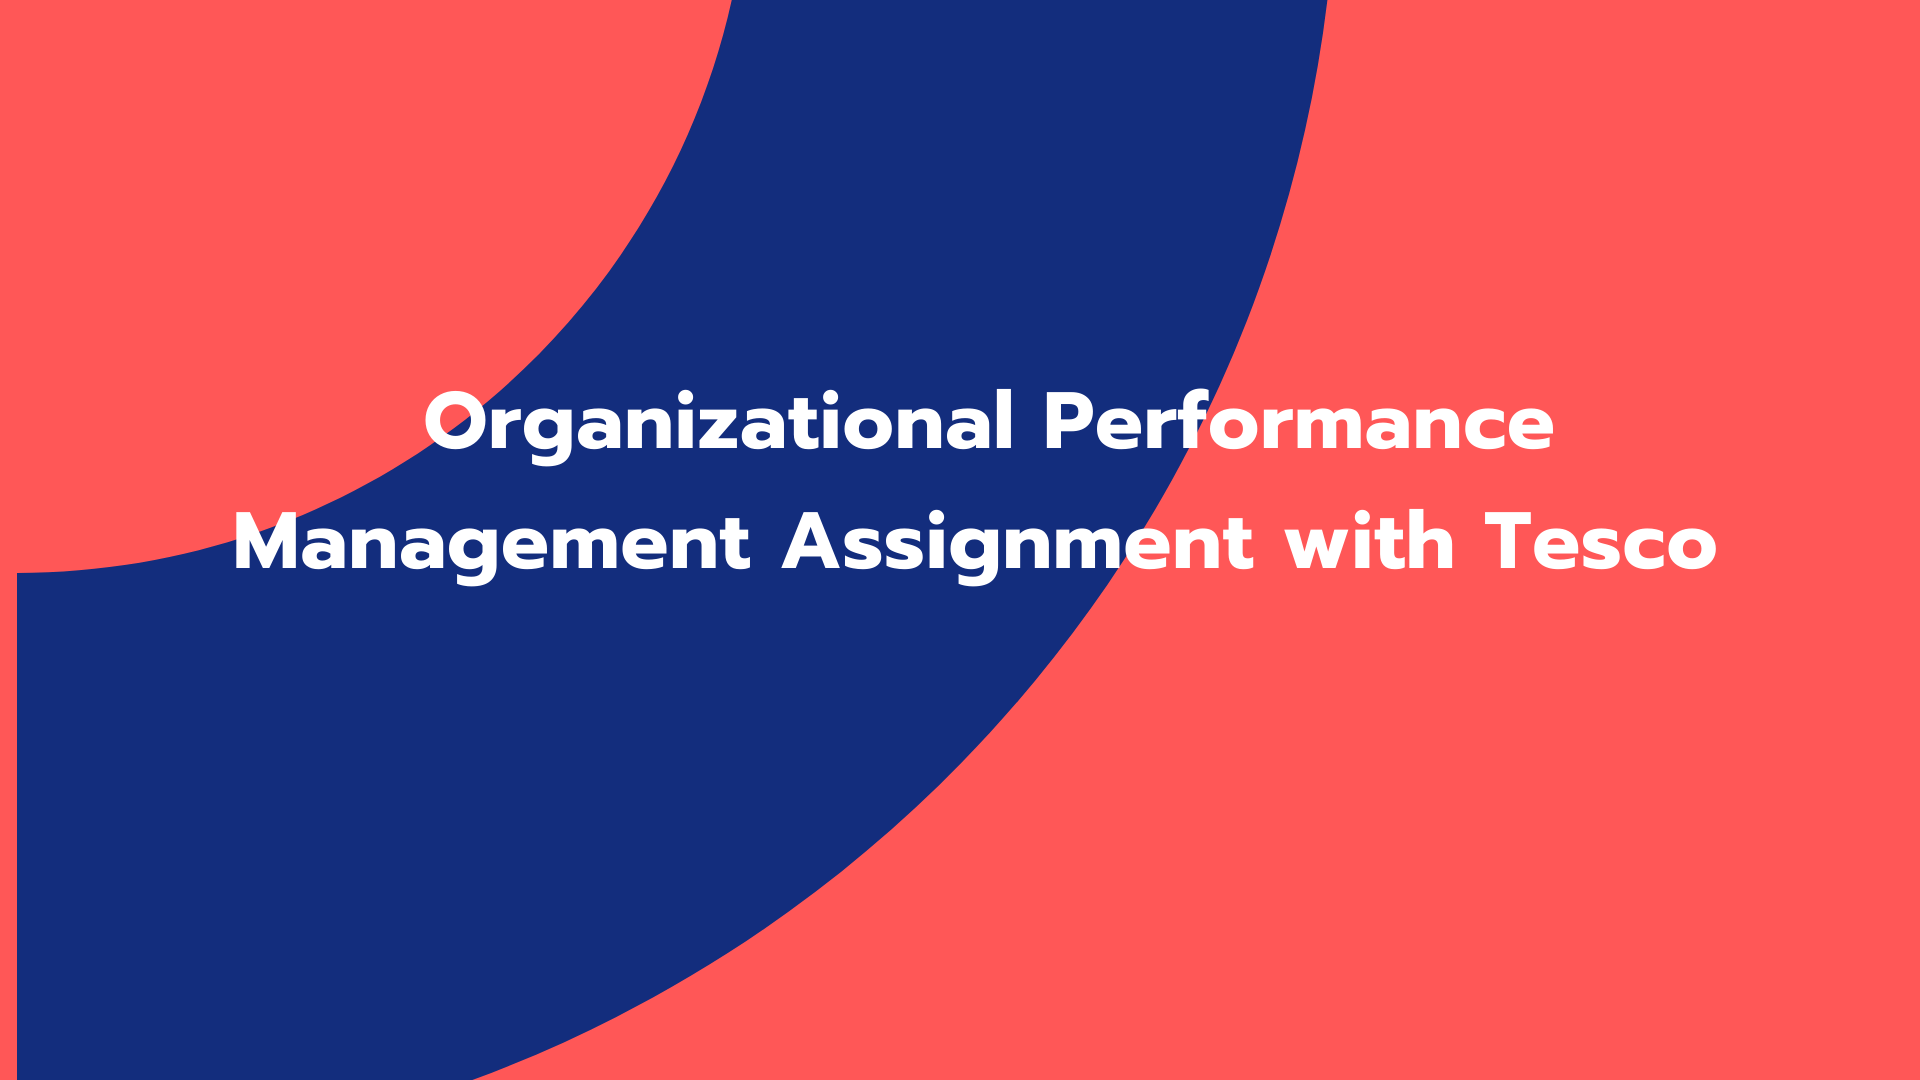 Organizational Performance Management Assignment with Tesco